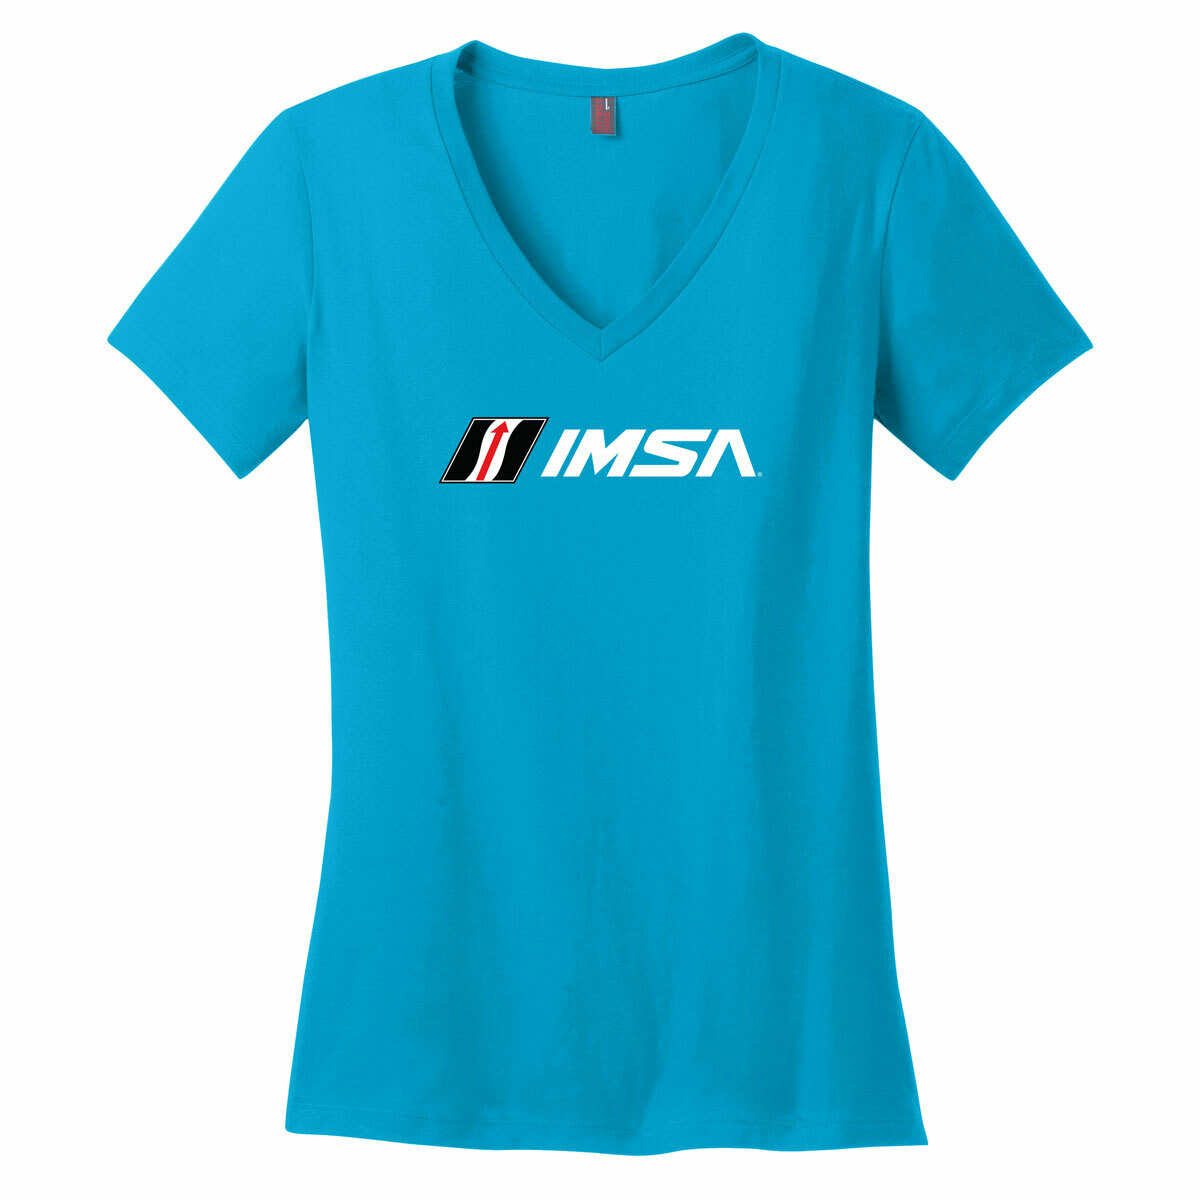 IMSA Logo Ladies V-Neck Tee- Bright Turquoise